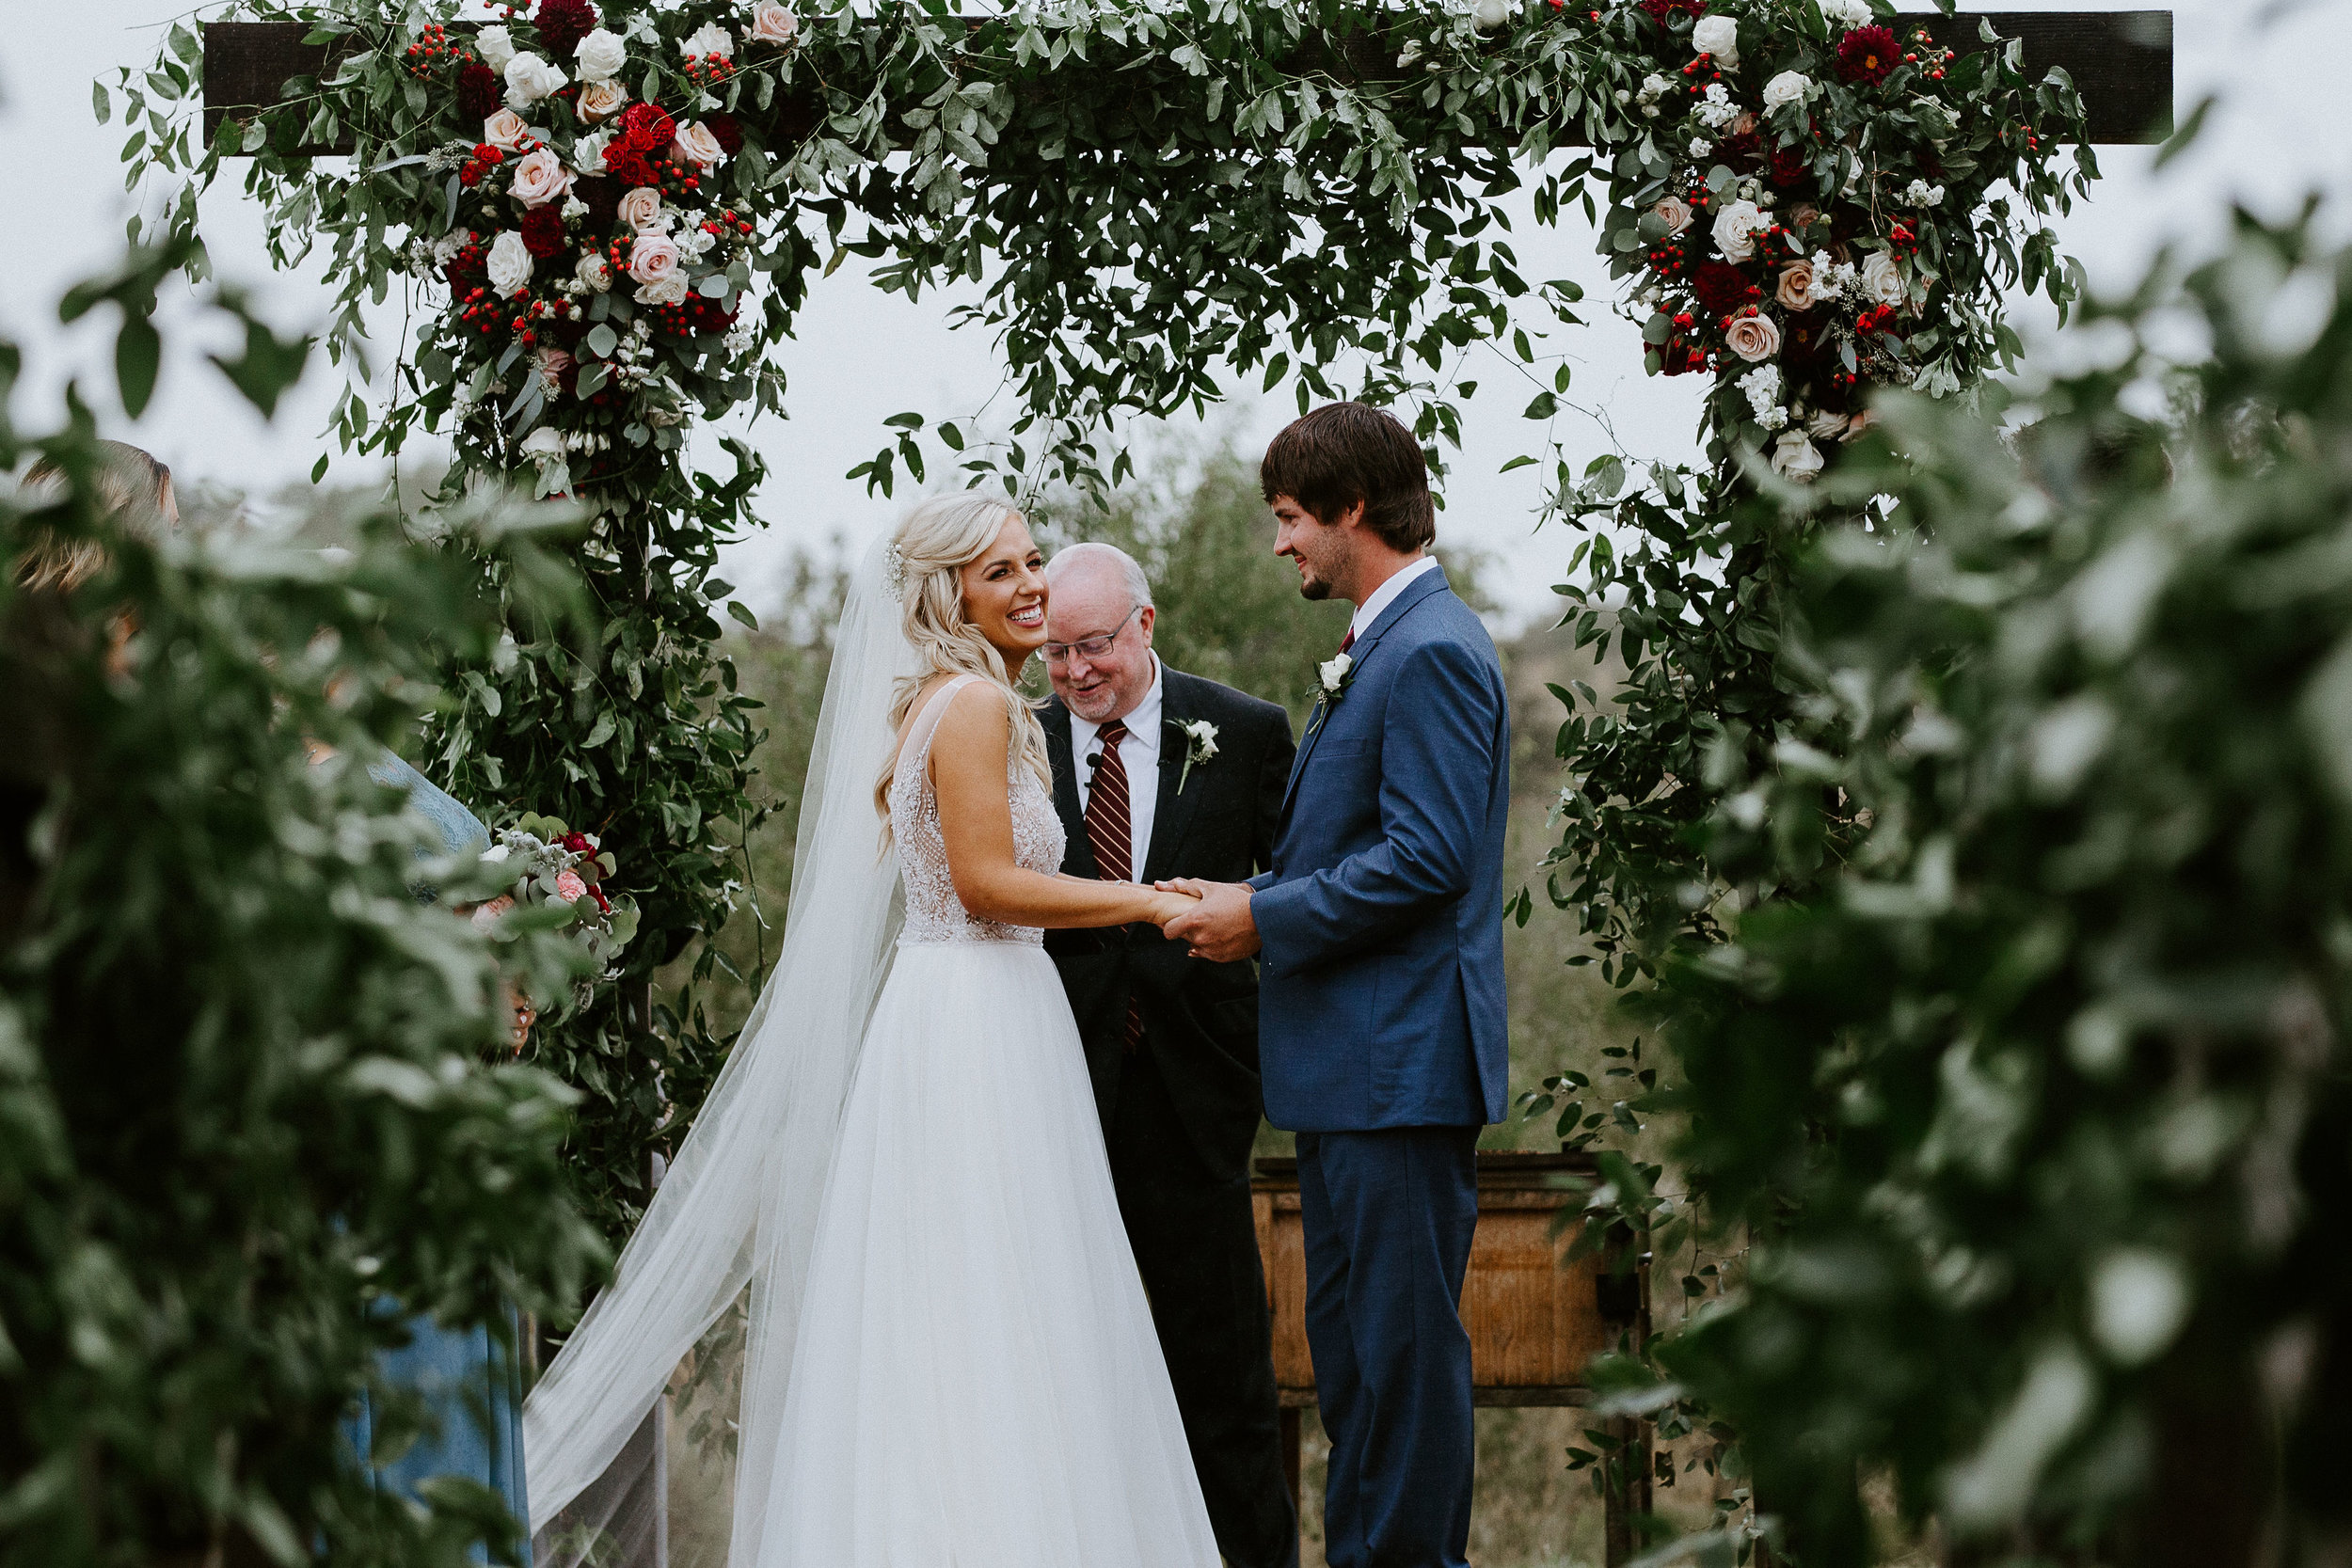 How Your Wedding Film Kills the Dreaded Wedding Blur - Photo by Amanda ScottWritten by Leslee LaytonLeslee is a wedding filmmaker and owner of Leslee Layton Films. She and her husband Chasen Shaw are the founders of Let's Revel.